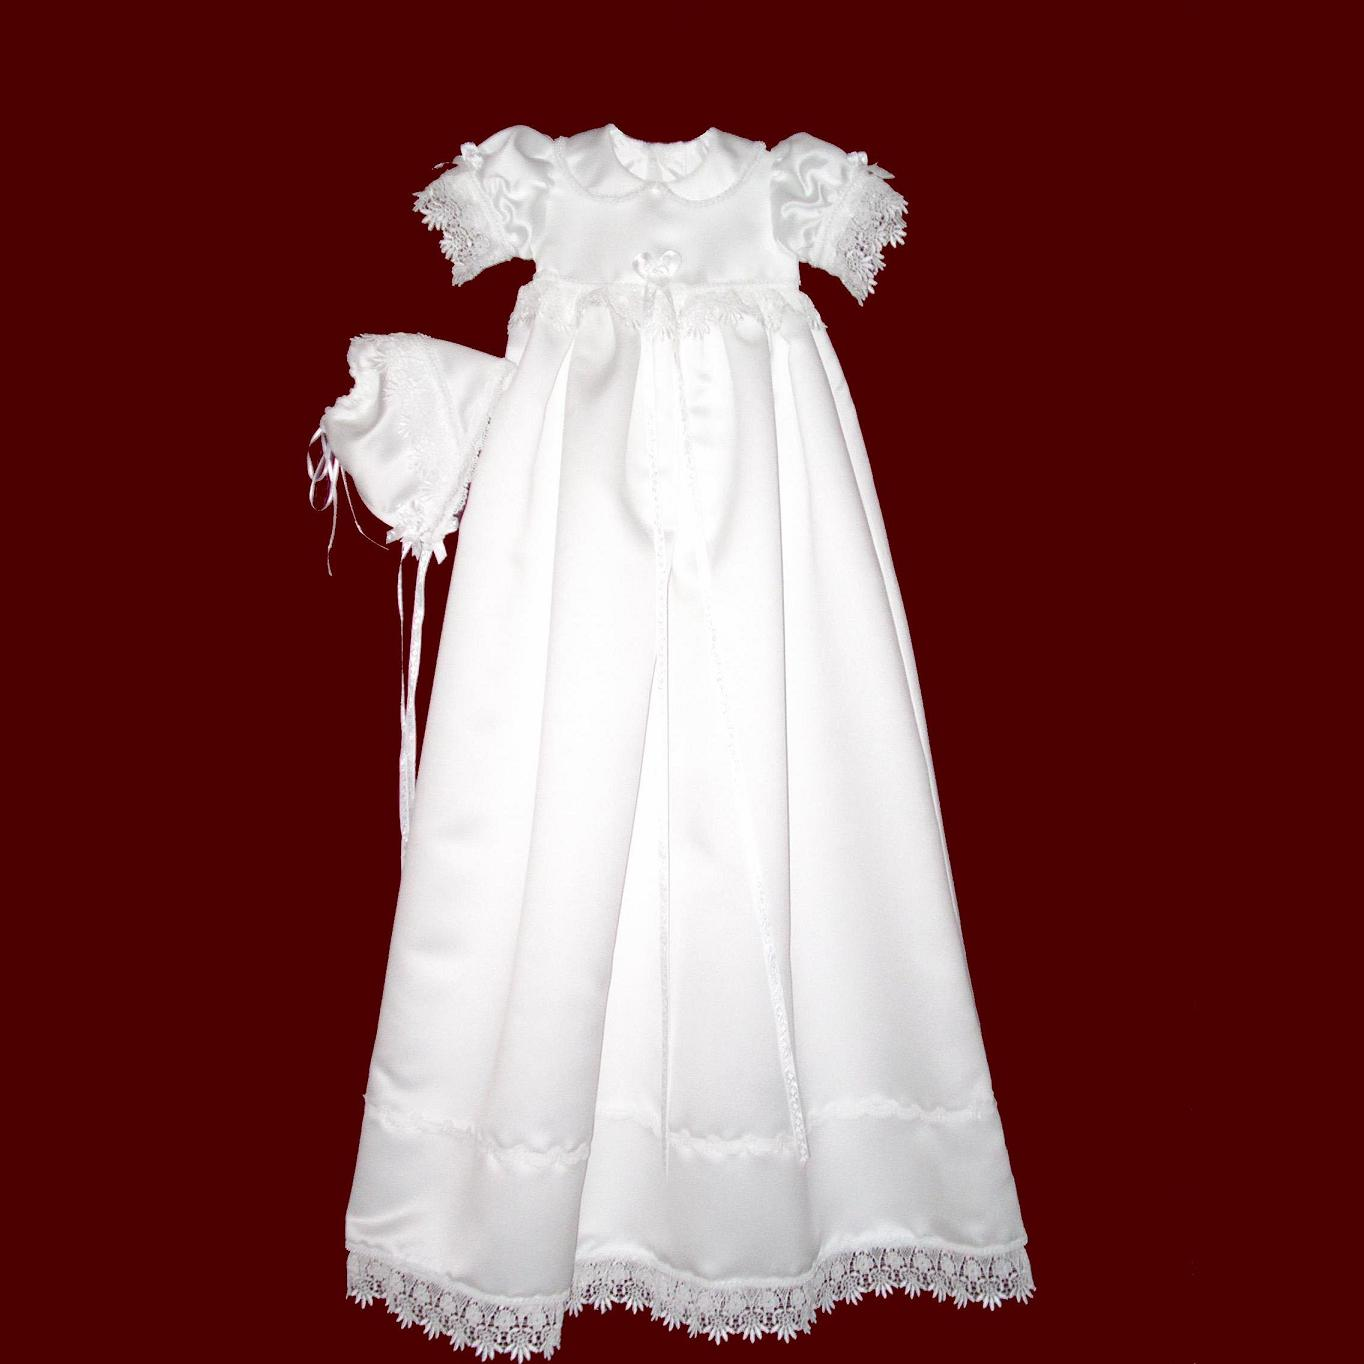 Girls Satin Christening Gown with Venice Lace and Bonnet